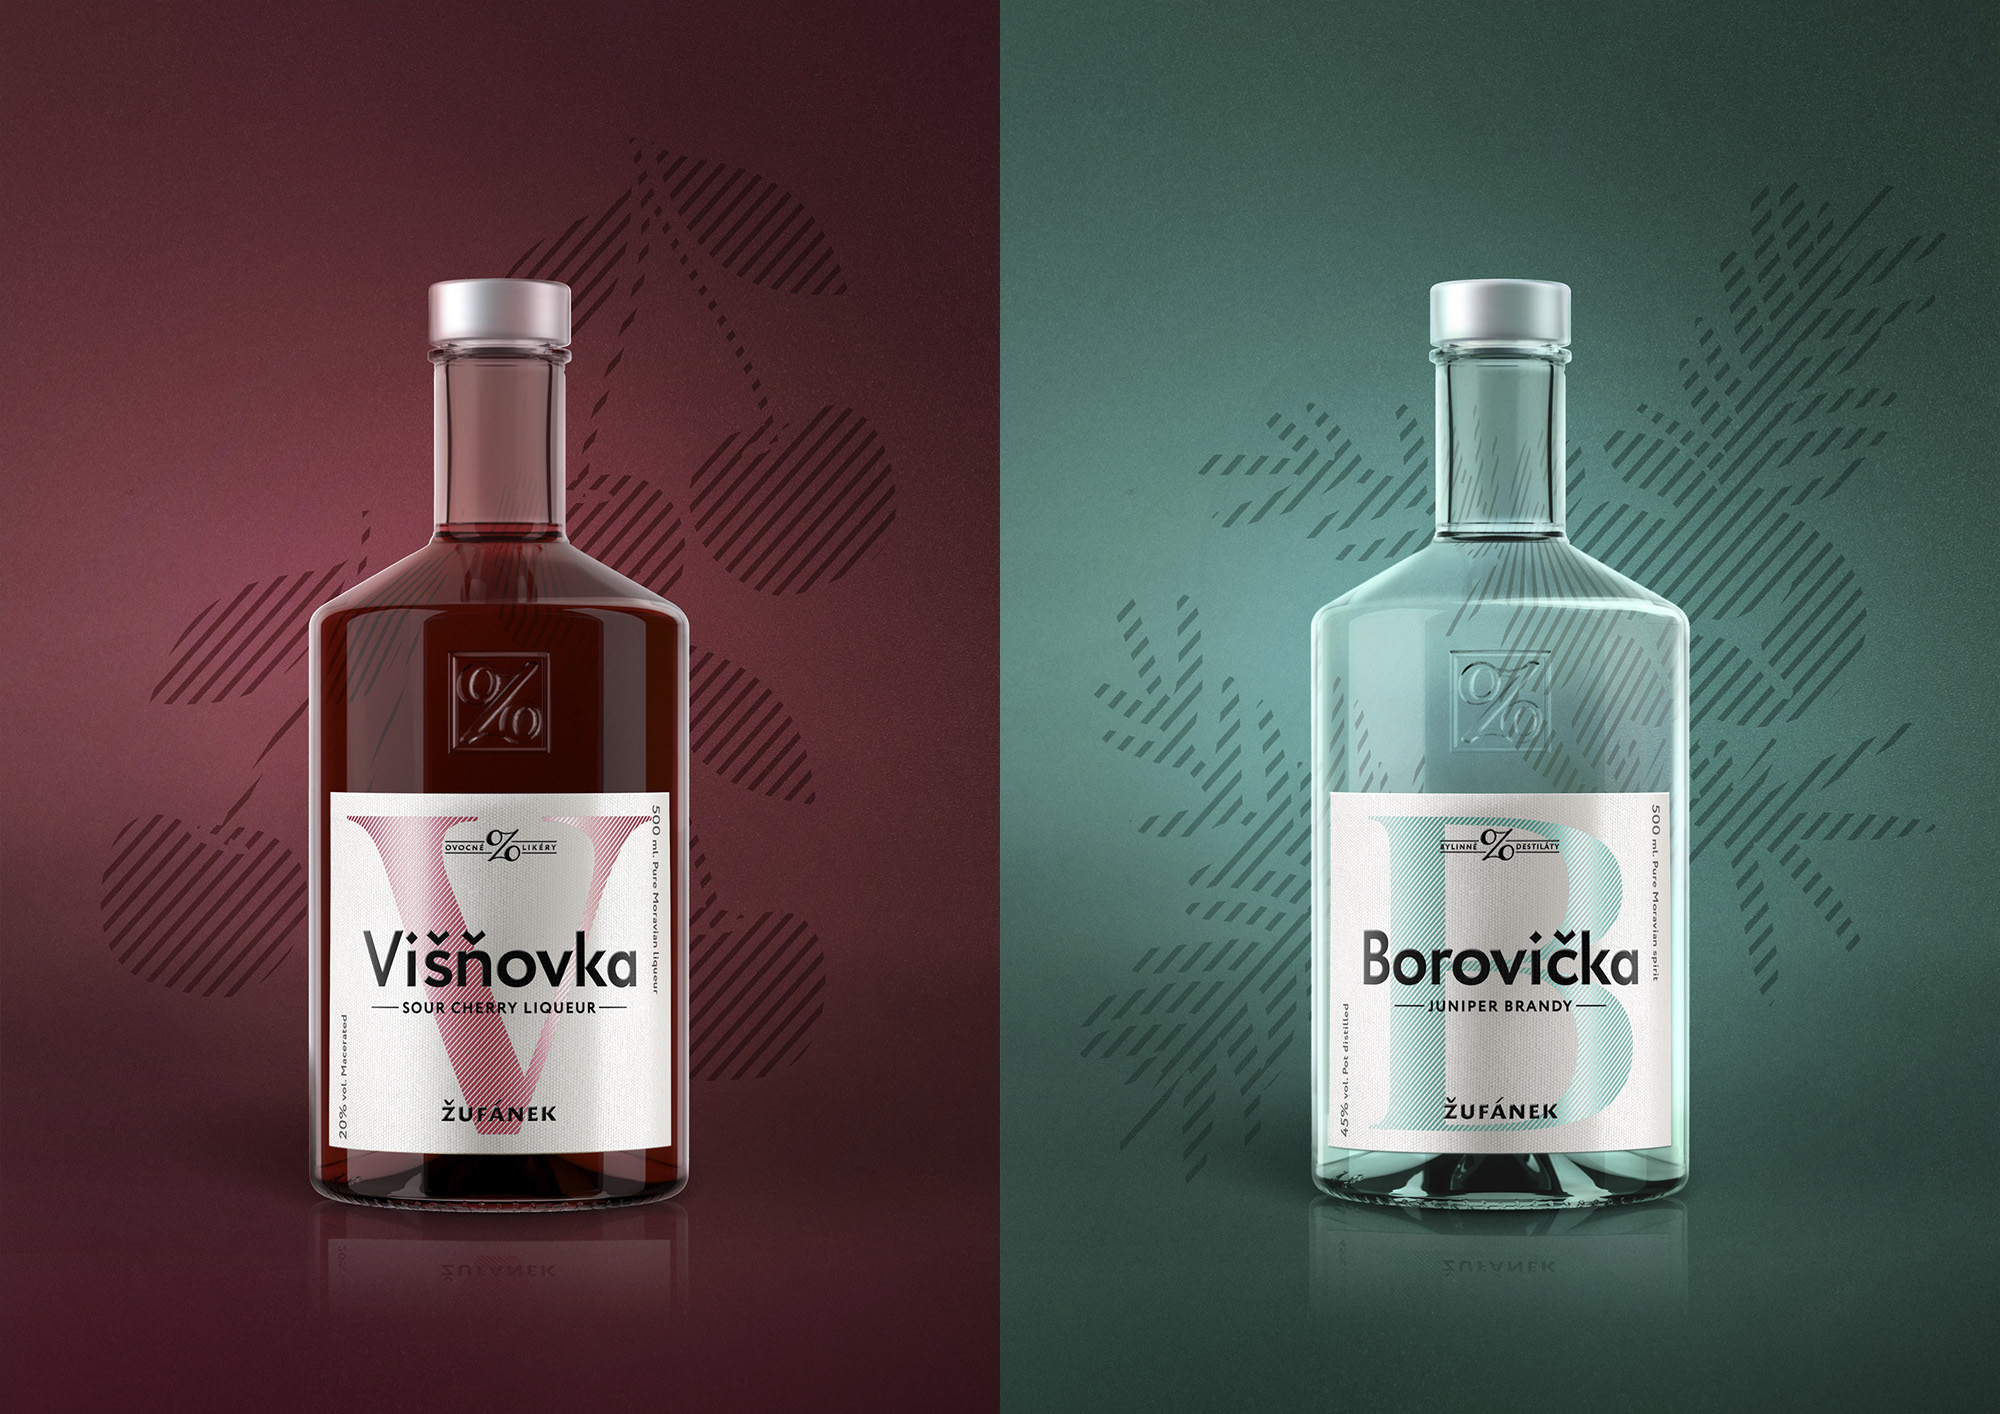 Creating Brand and Packaging Design of well known Spirit and Beloved in the Czech Republic / World Brand & Packaging Design Society